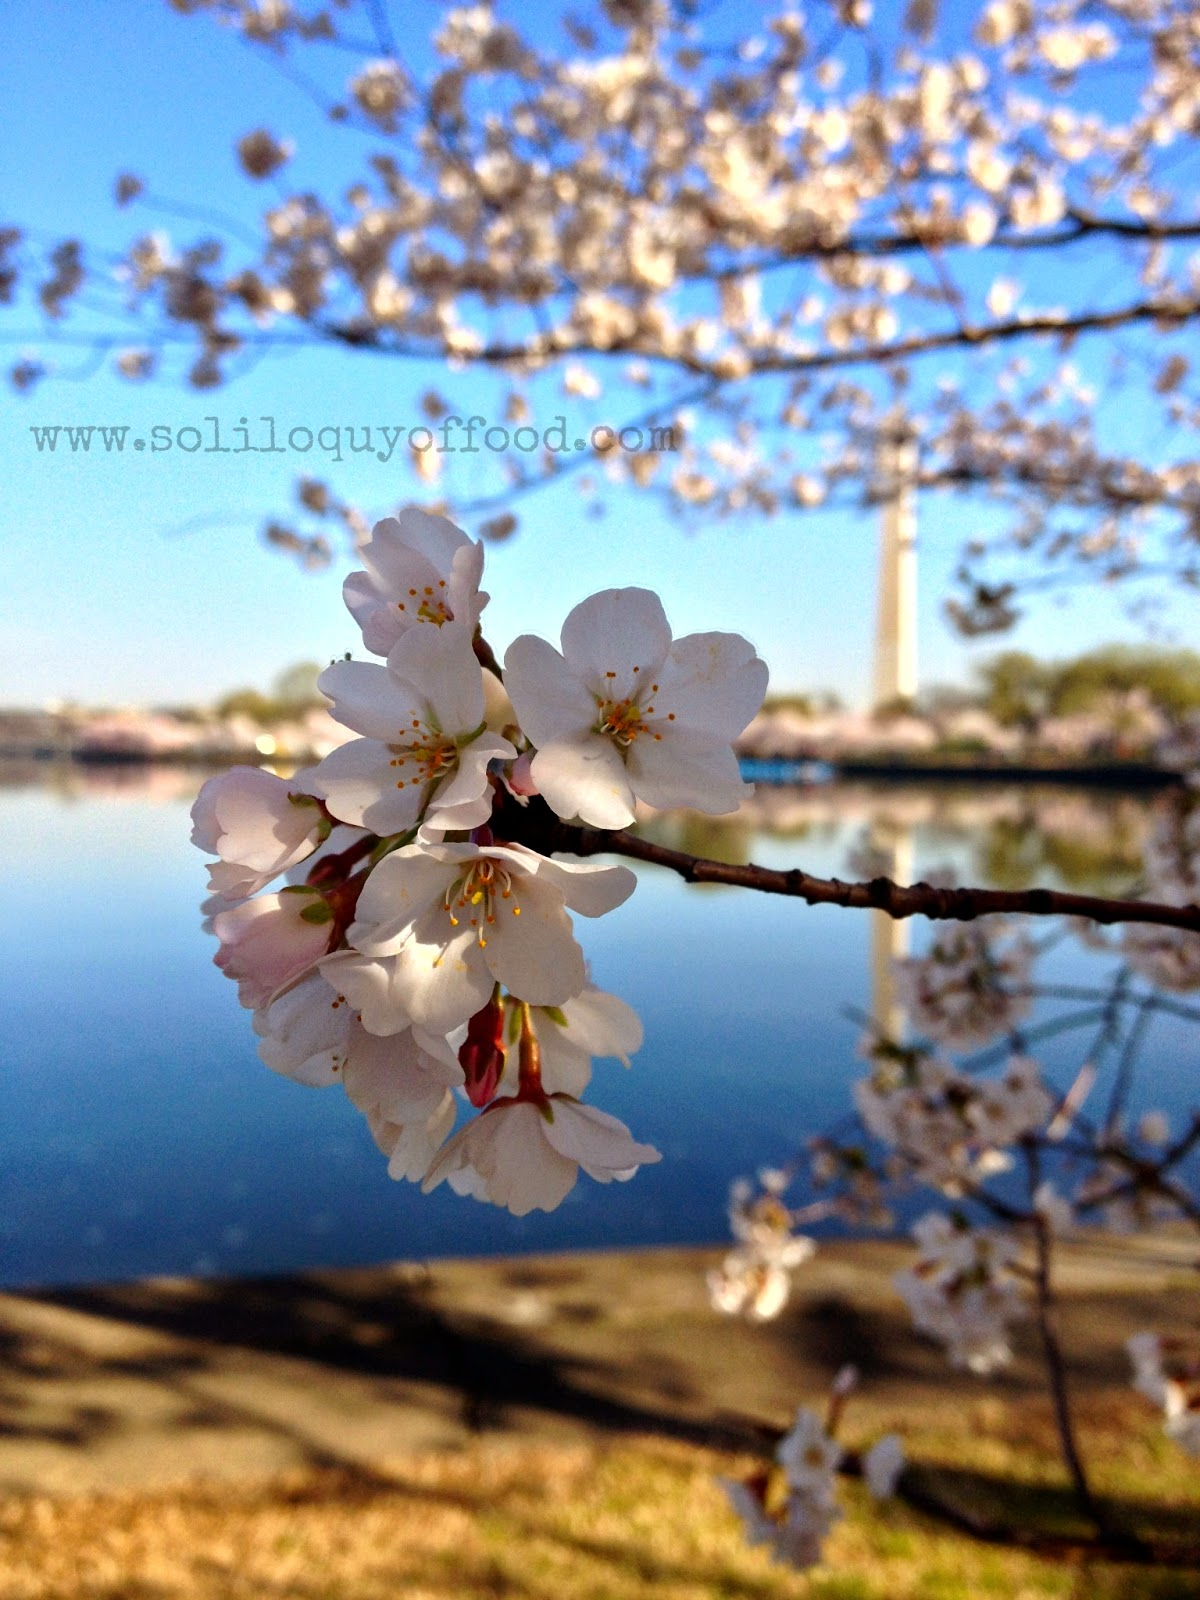 The Tidal Basin - Cherry Blossoms 2014, Washington, DC - www.soliloquyoffood.com